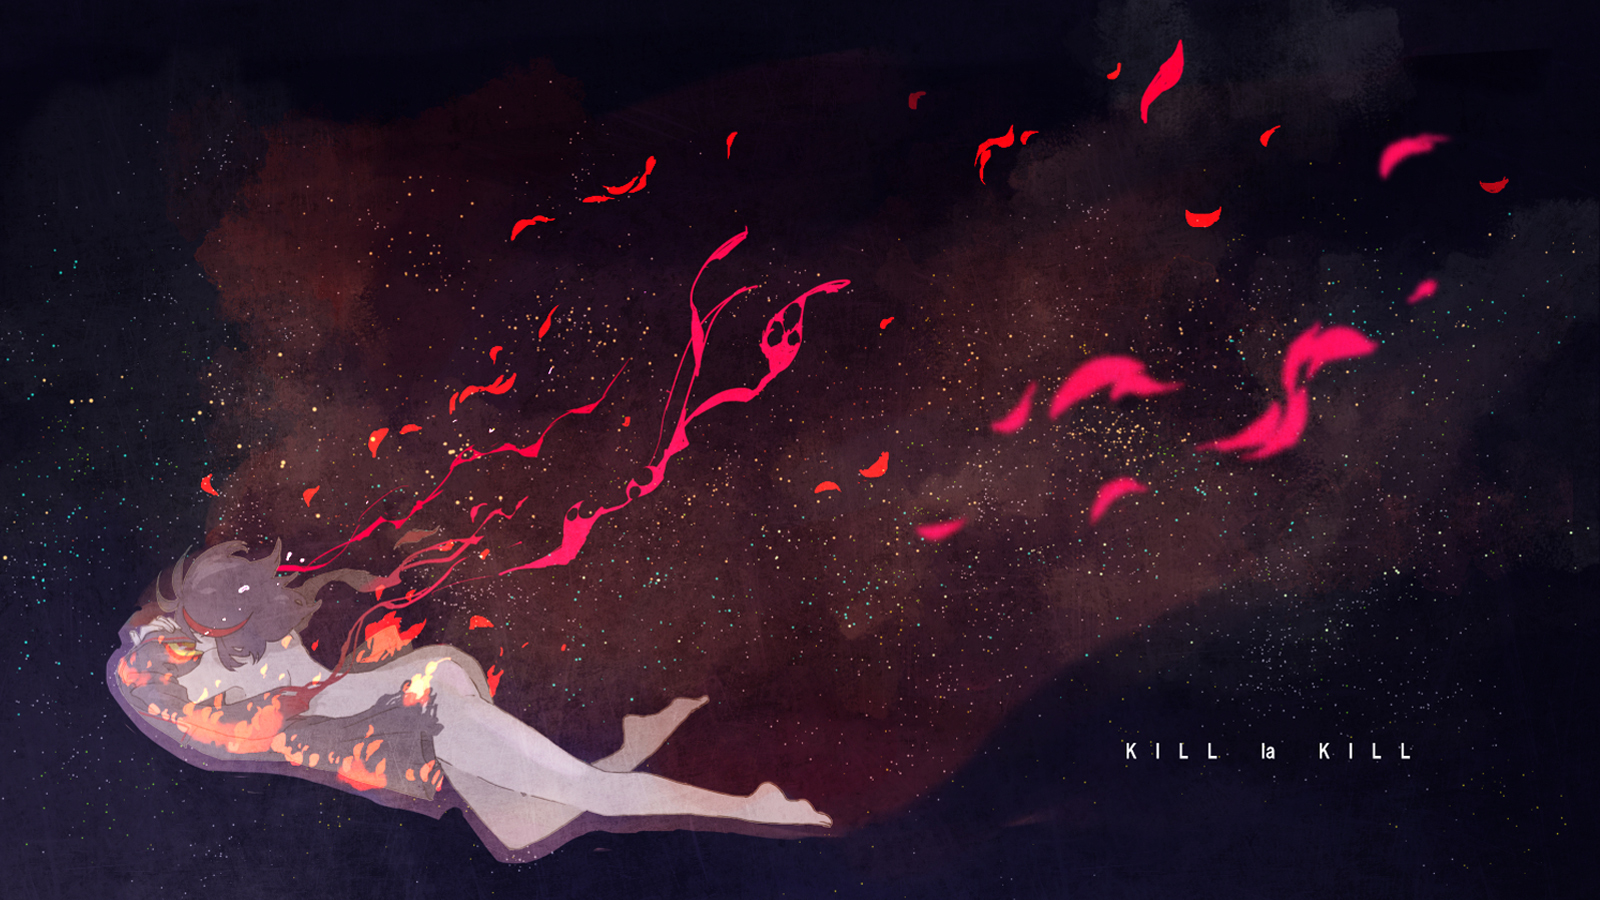 hd wallpapers kill la kill anime kill la kill hd wallpaper 1920x1080 1600x900